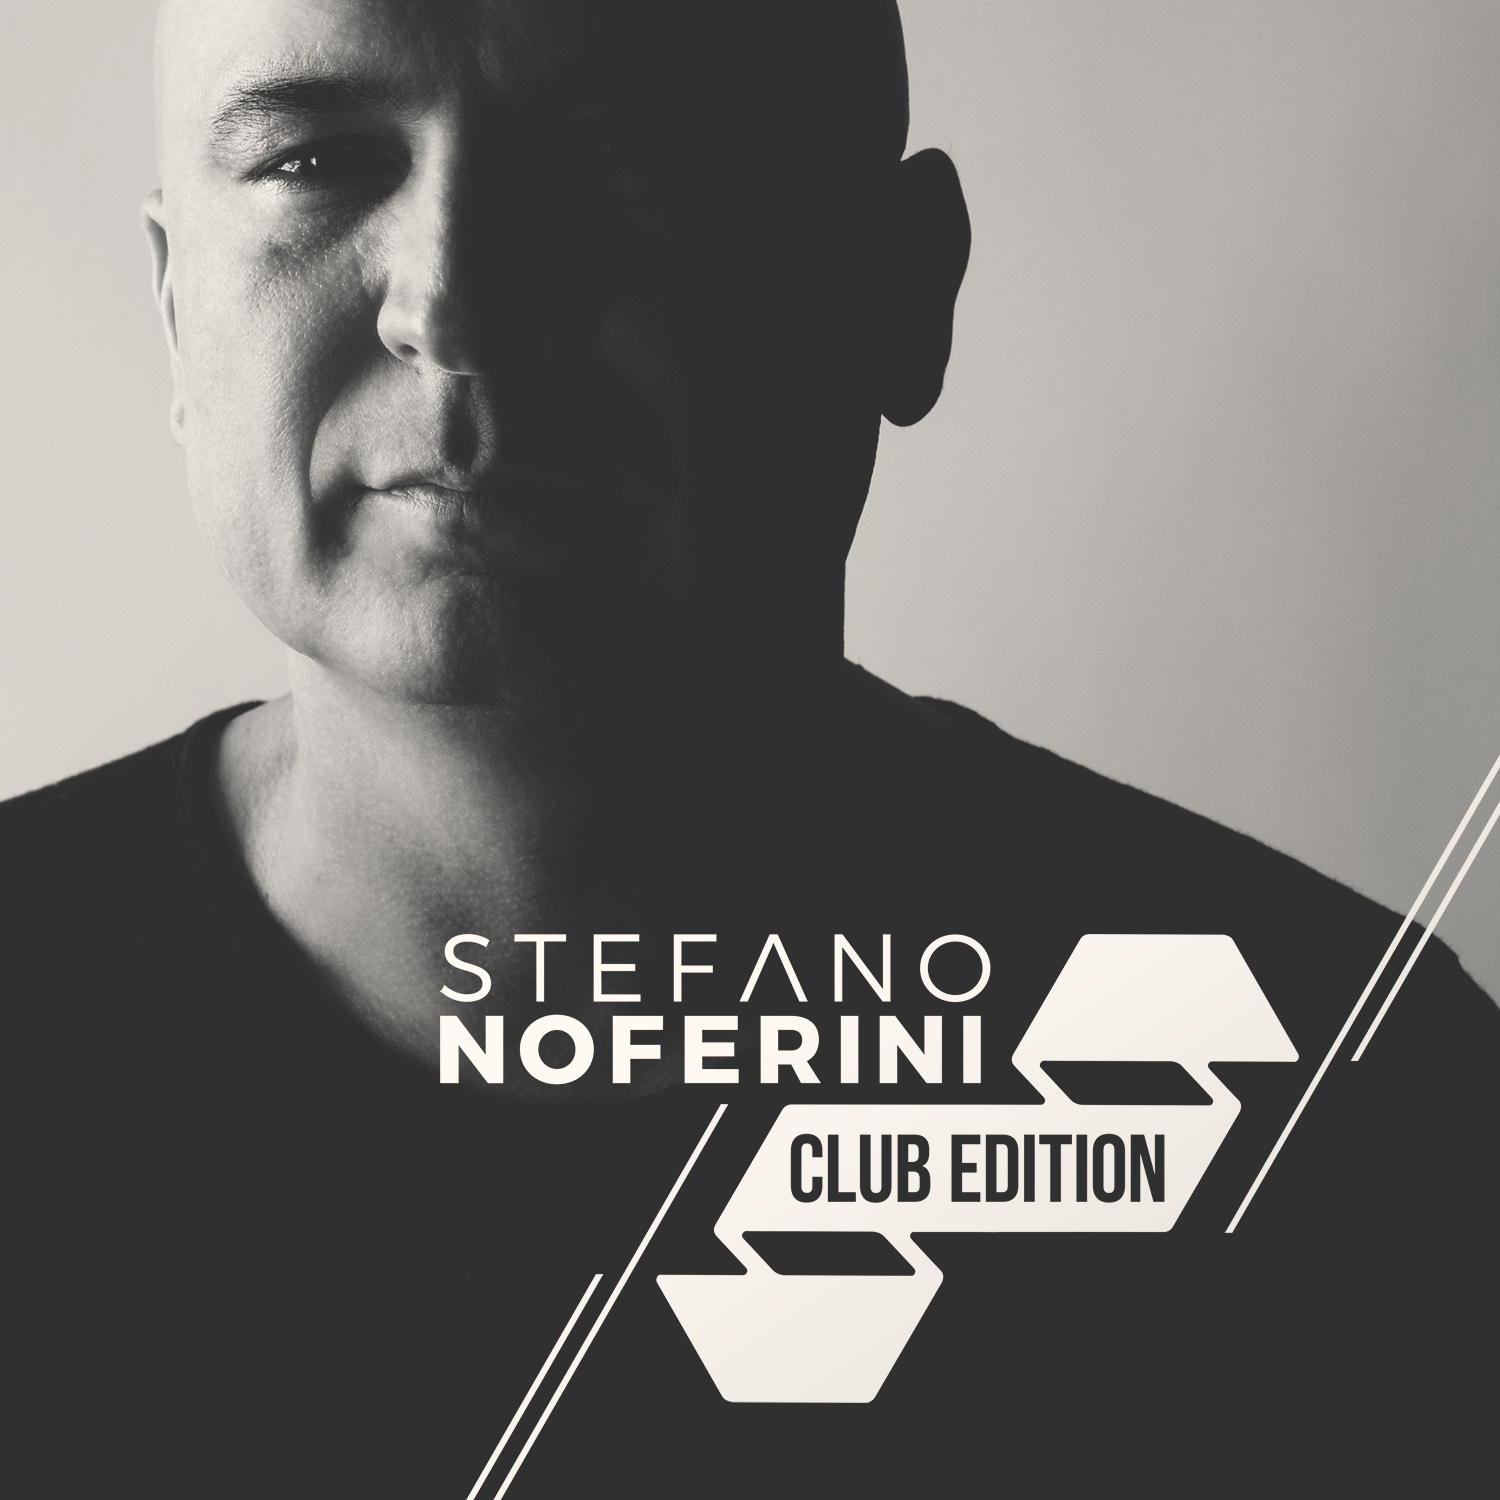 Delta Podcasts - Club Edition by Stefano Noferini (07.12.2017)